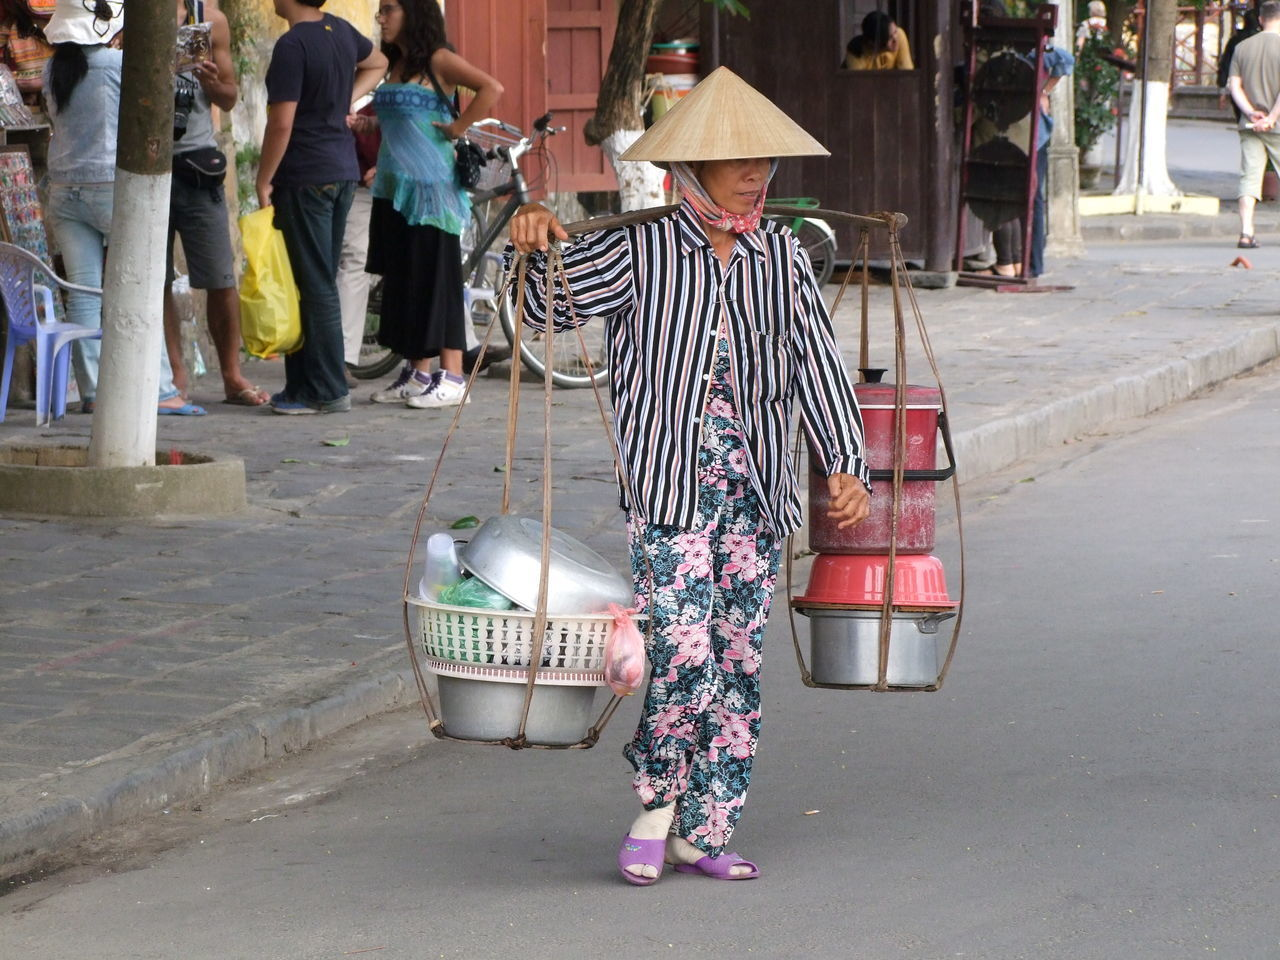 Travelling Restaurant! Business Cafe Colourful Composition Cooking Pots Culture Food Full Frame Hoi An Incidental People Making A Living Outdoor Photography Restaurant Street Tourism Traditional Traditional Clothing Travelling Restaurant Vietnam Woman